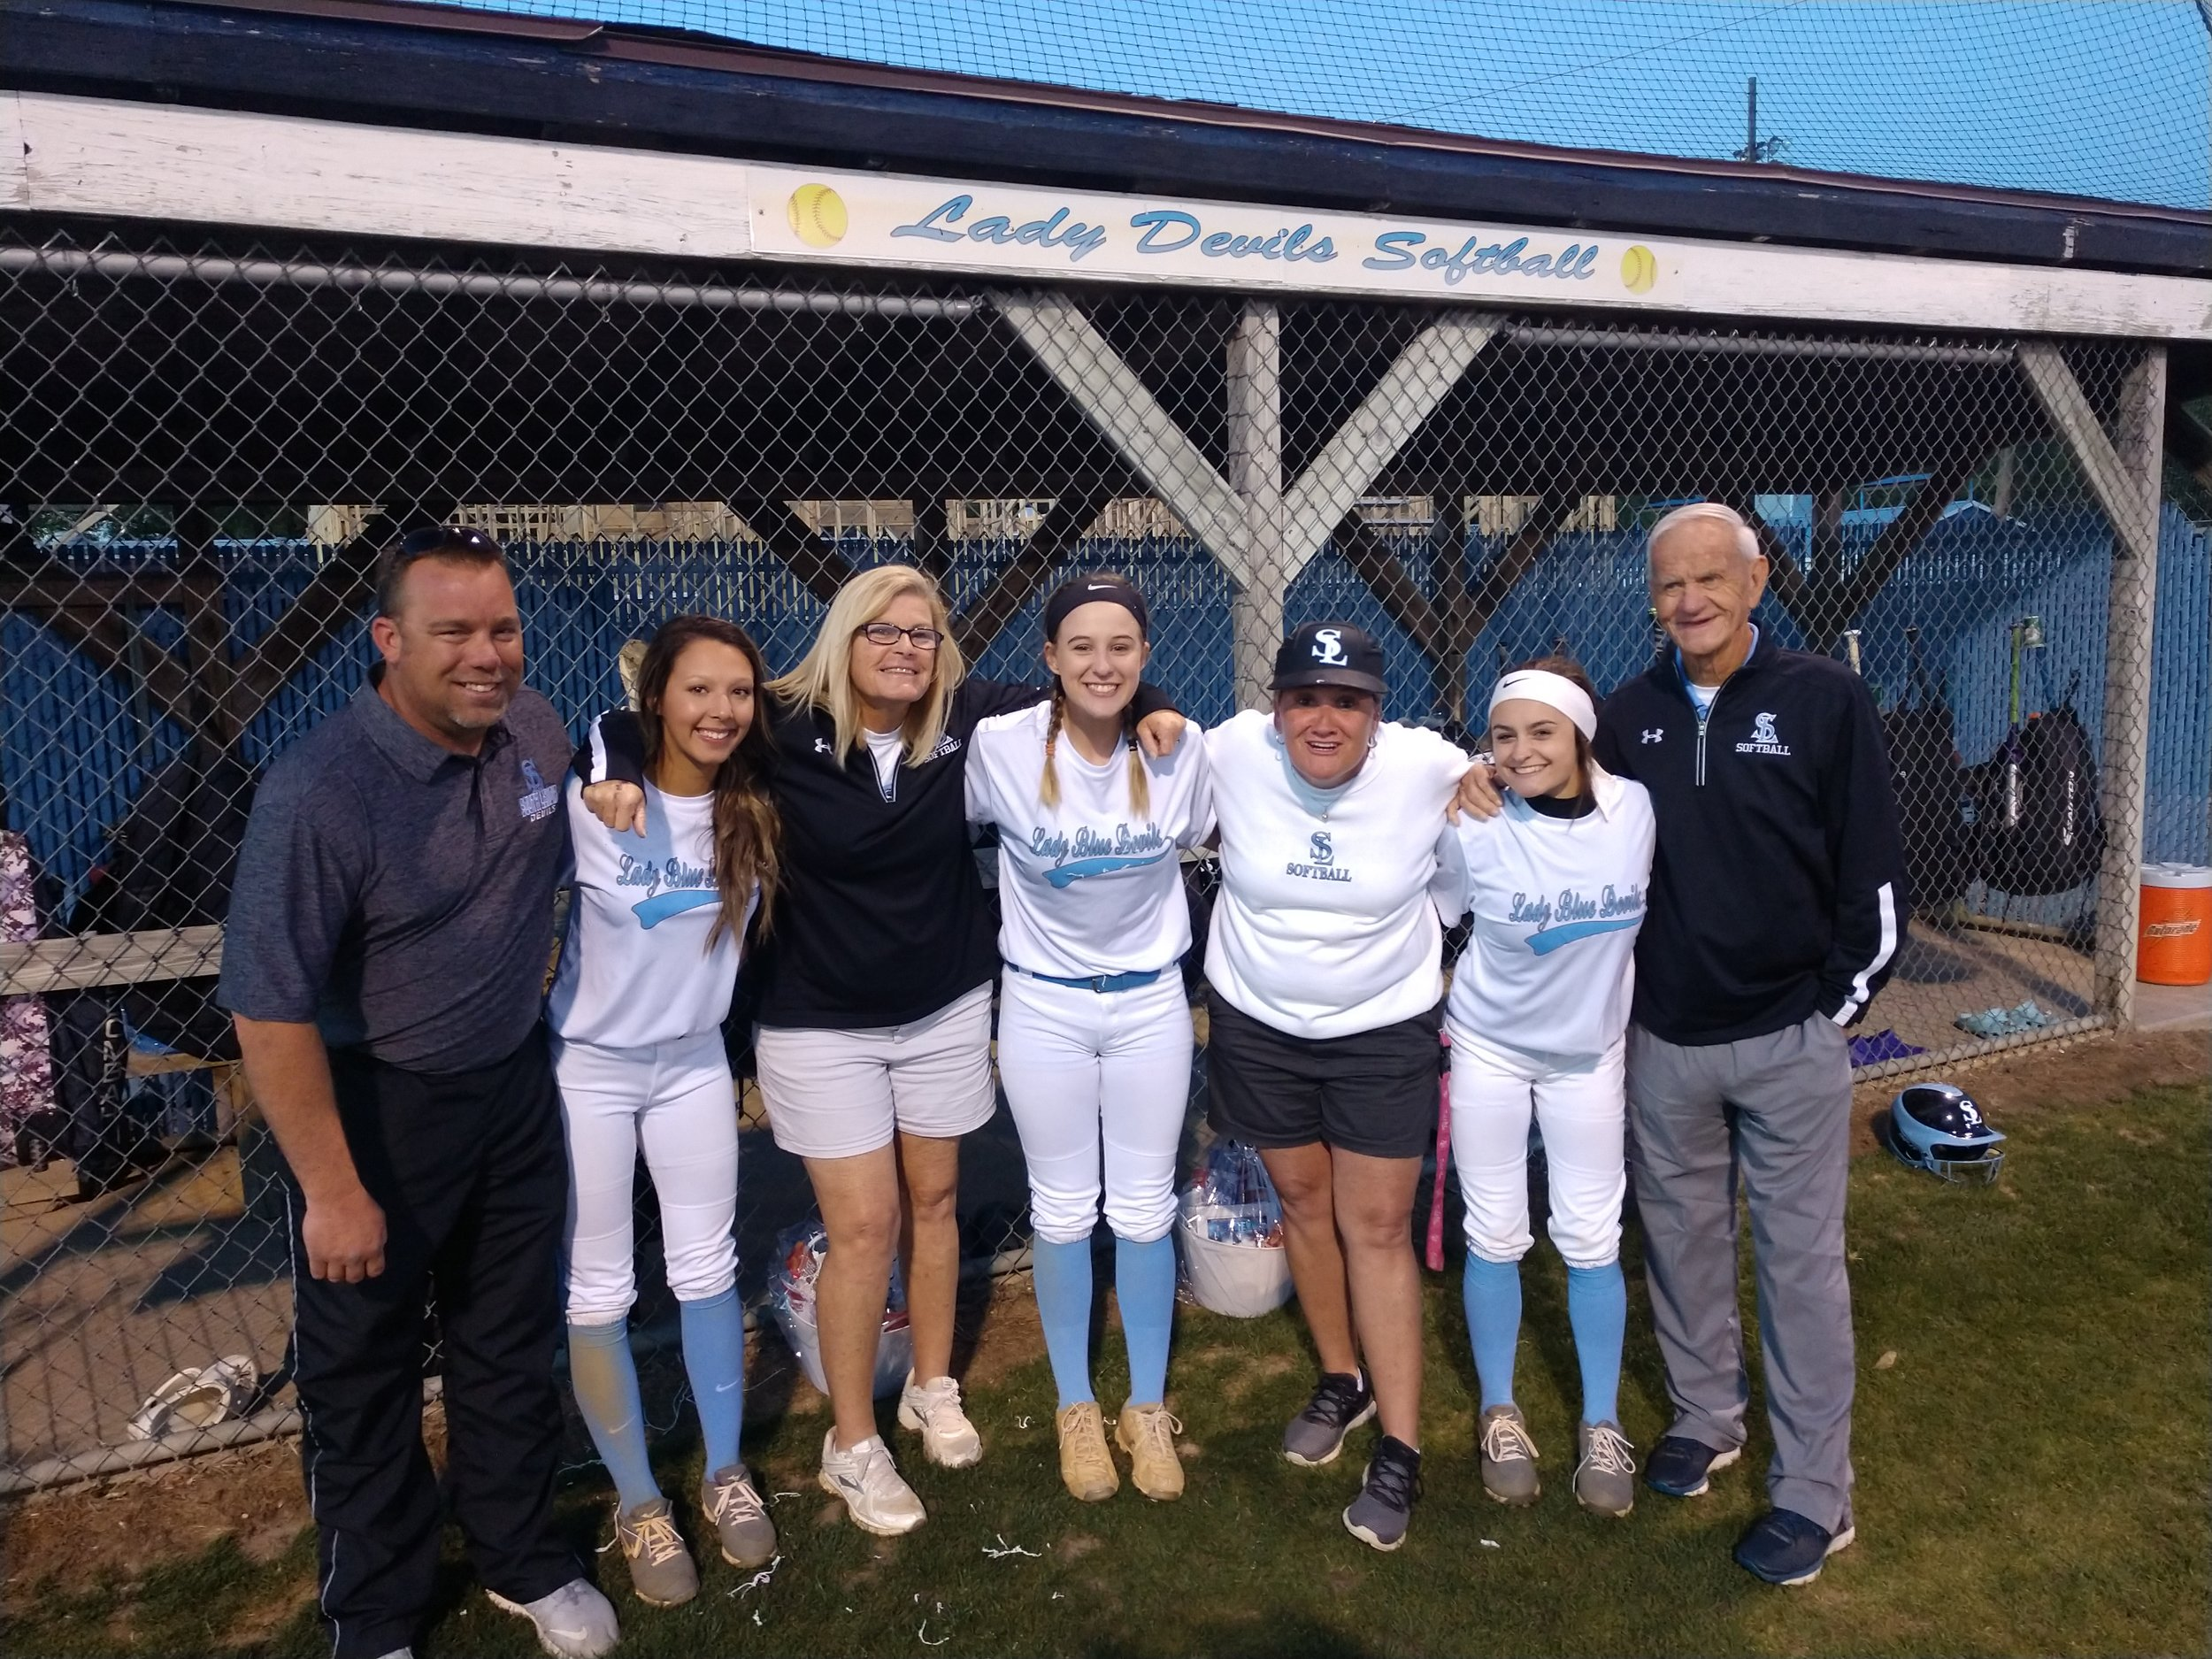 South Lenoir's three seniors, from left, Allie Parker, Samantha Sutton and Kenly Hardison played their final regular-season home game Tuesday. Standing next to them are, from left, assistant coach Brian Lucas, head coach Lisa Smith, and assistant coaches Mishella Craine and Thurman Pate. Photo by Junious Smith III / Neuse News